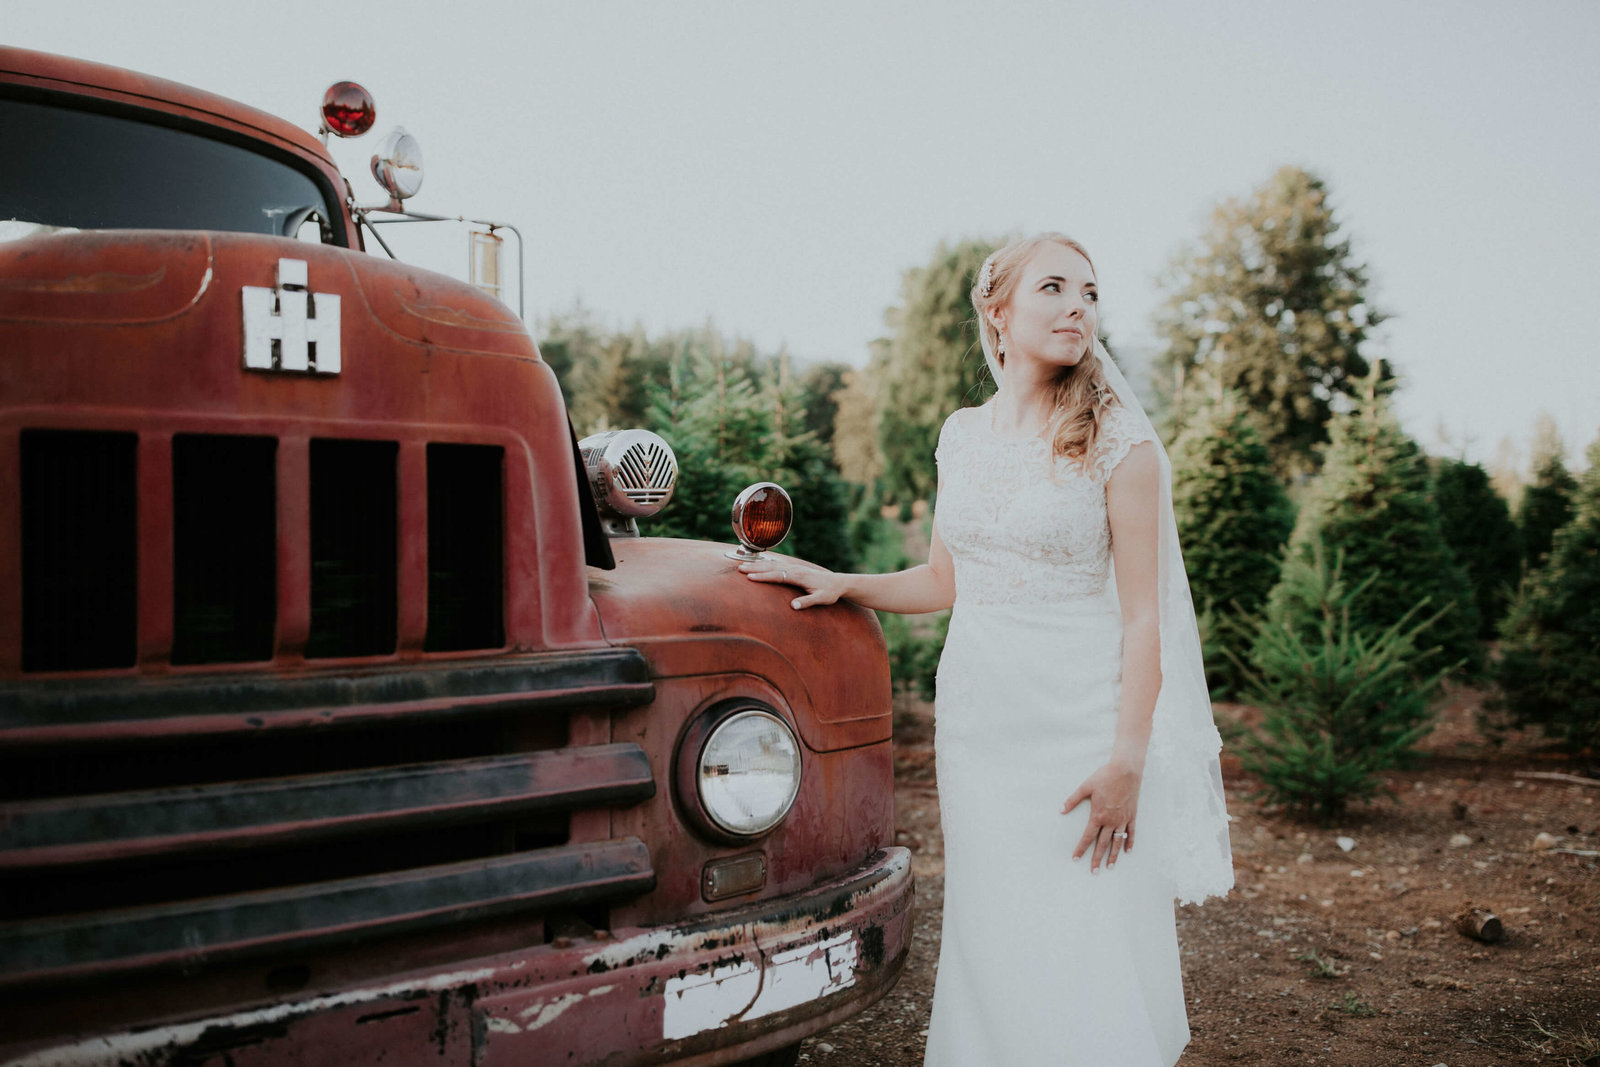 Trinity-tree-farm-wedding-photos-by-Adina-Preston-Photography-2019-848